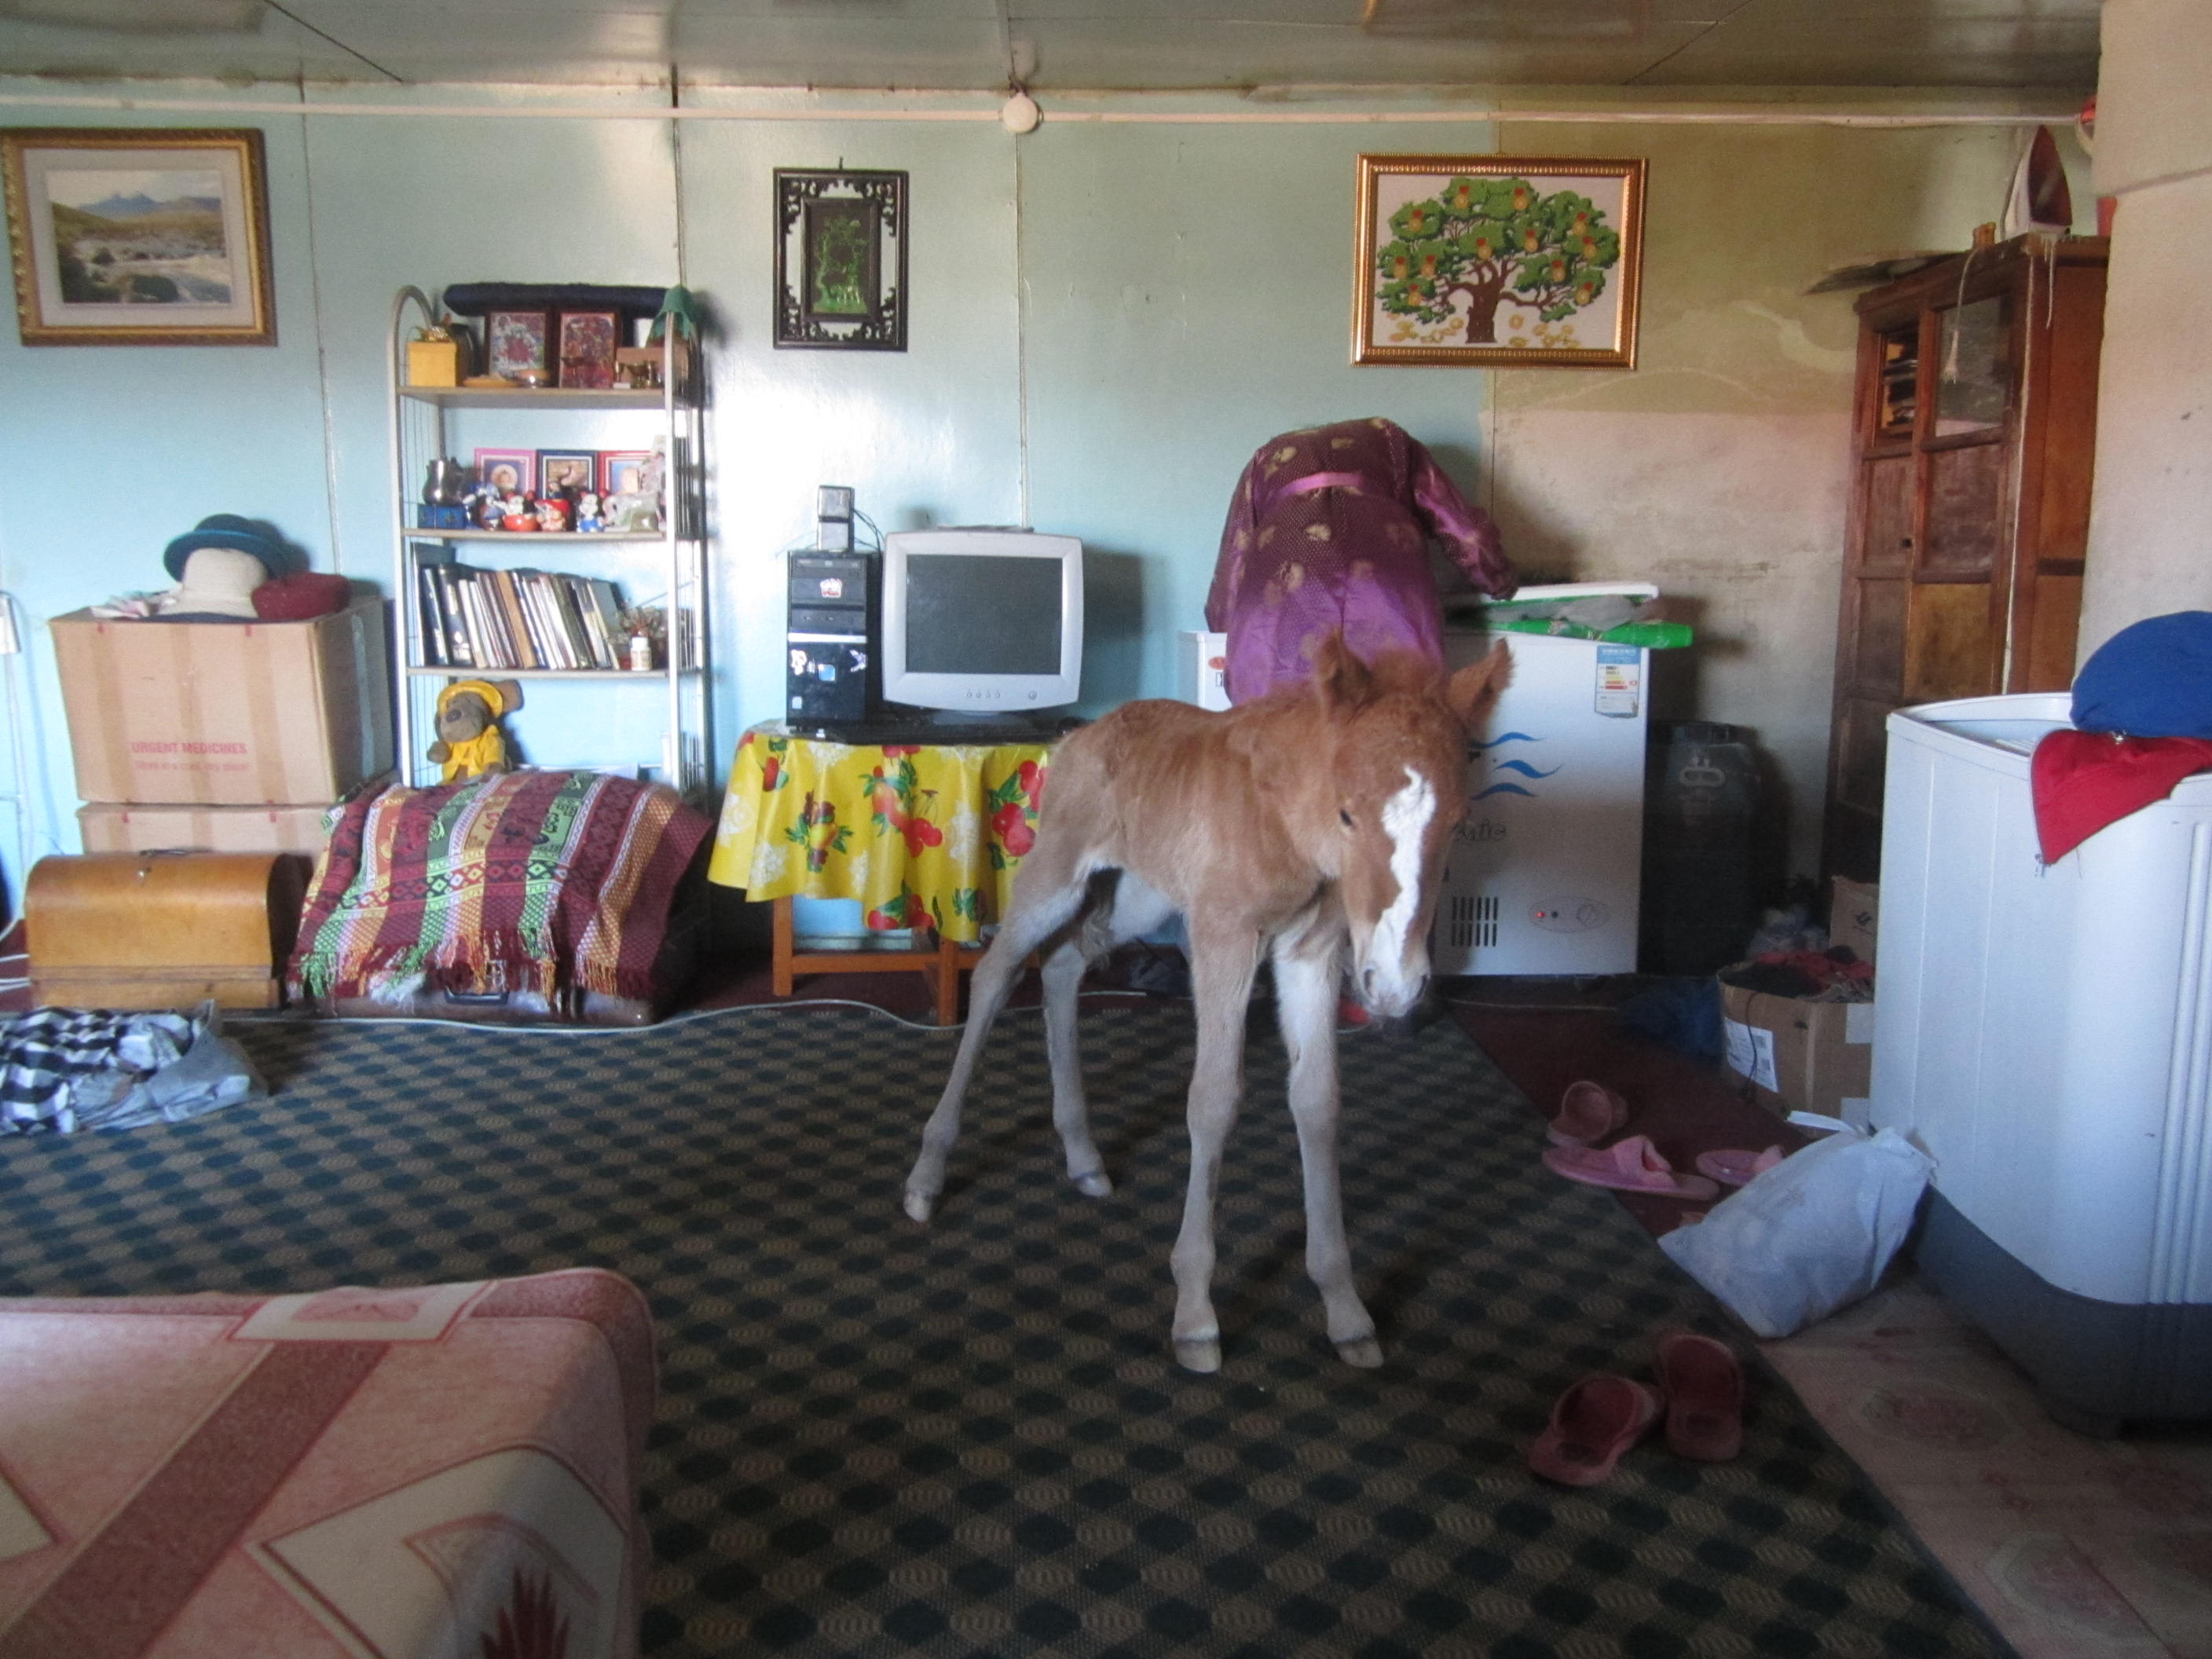 This family had brought their newborn colt inside, so he wouldn't get too cold. Mörön, Mongolia.